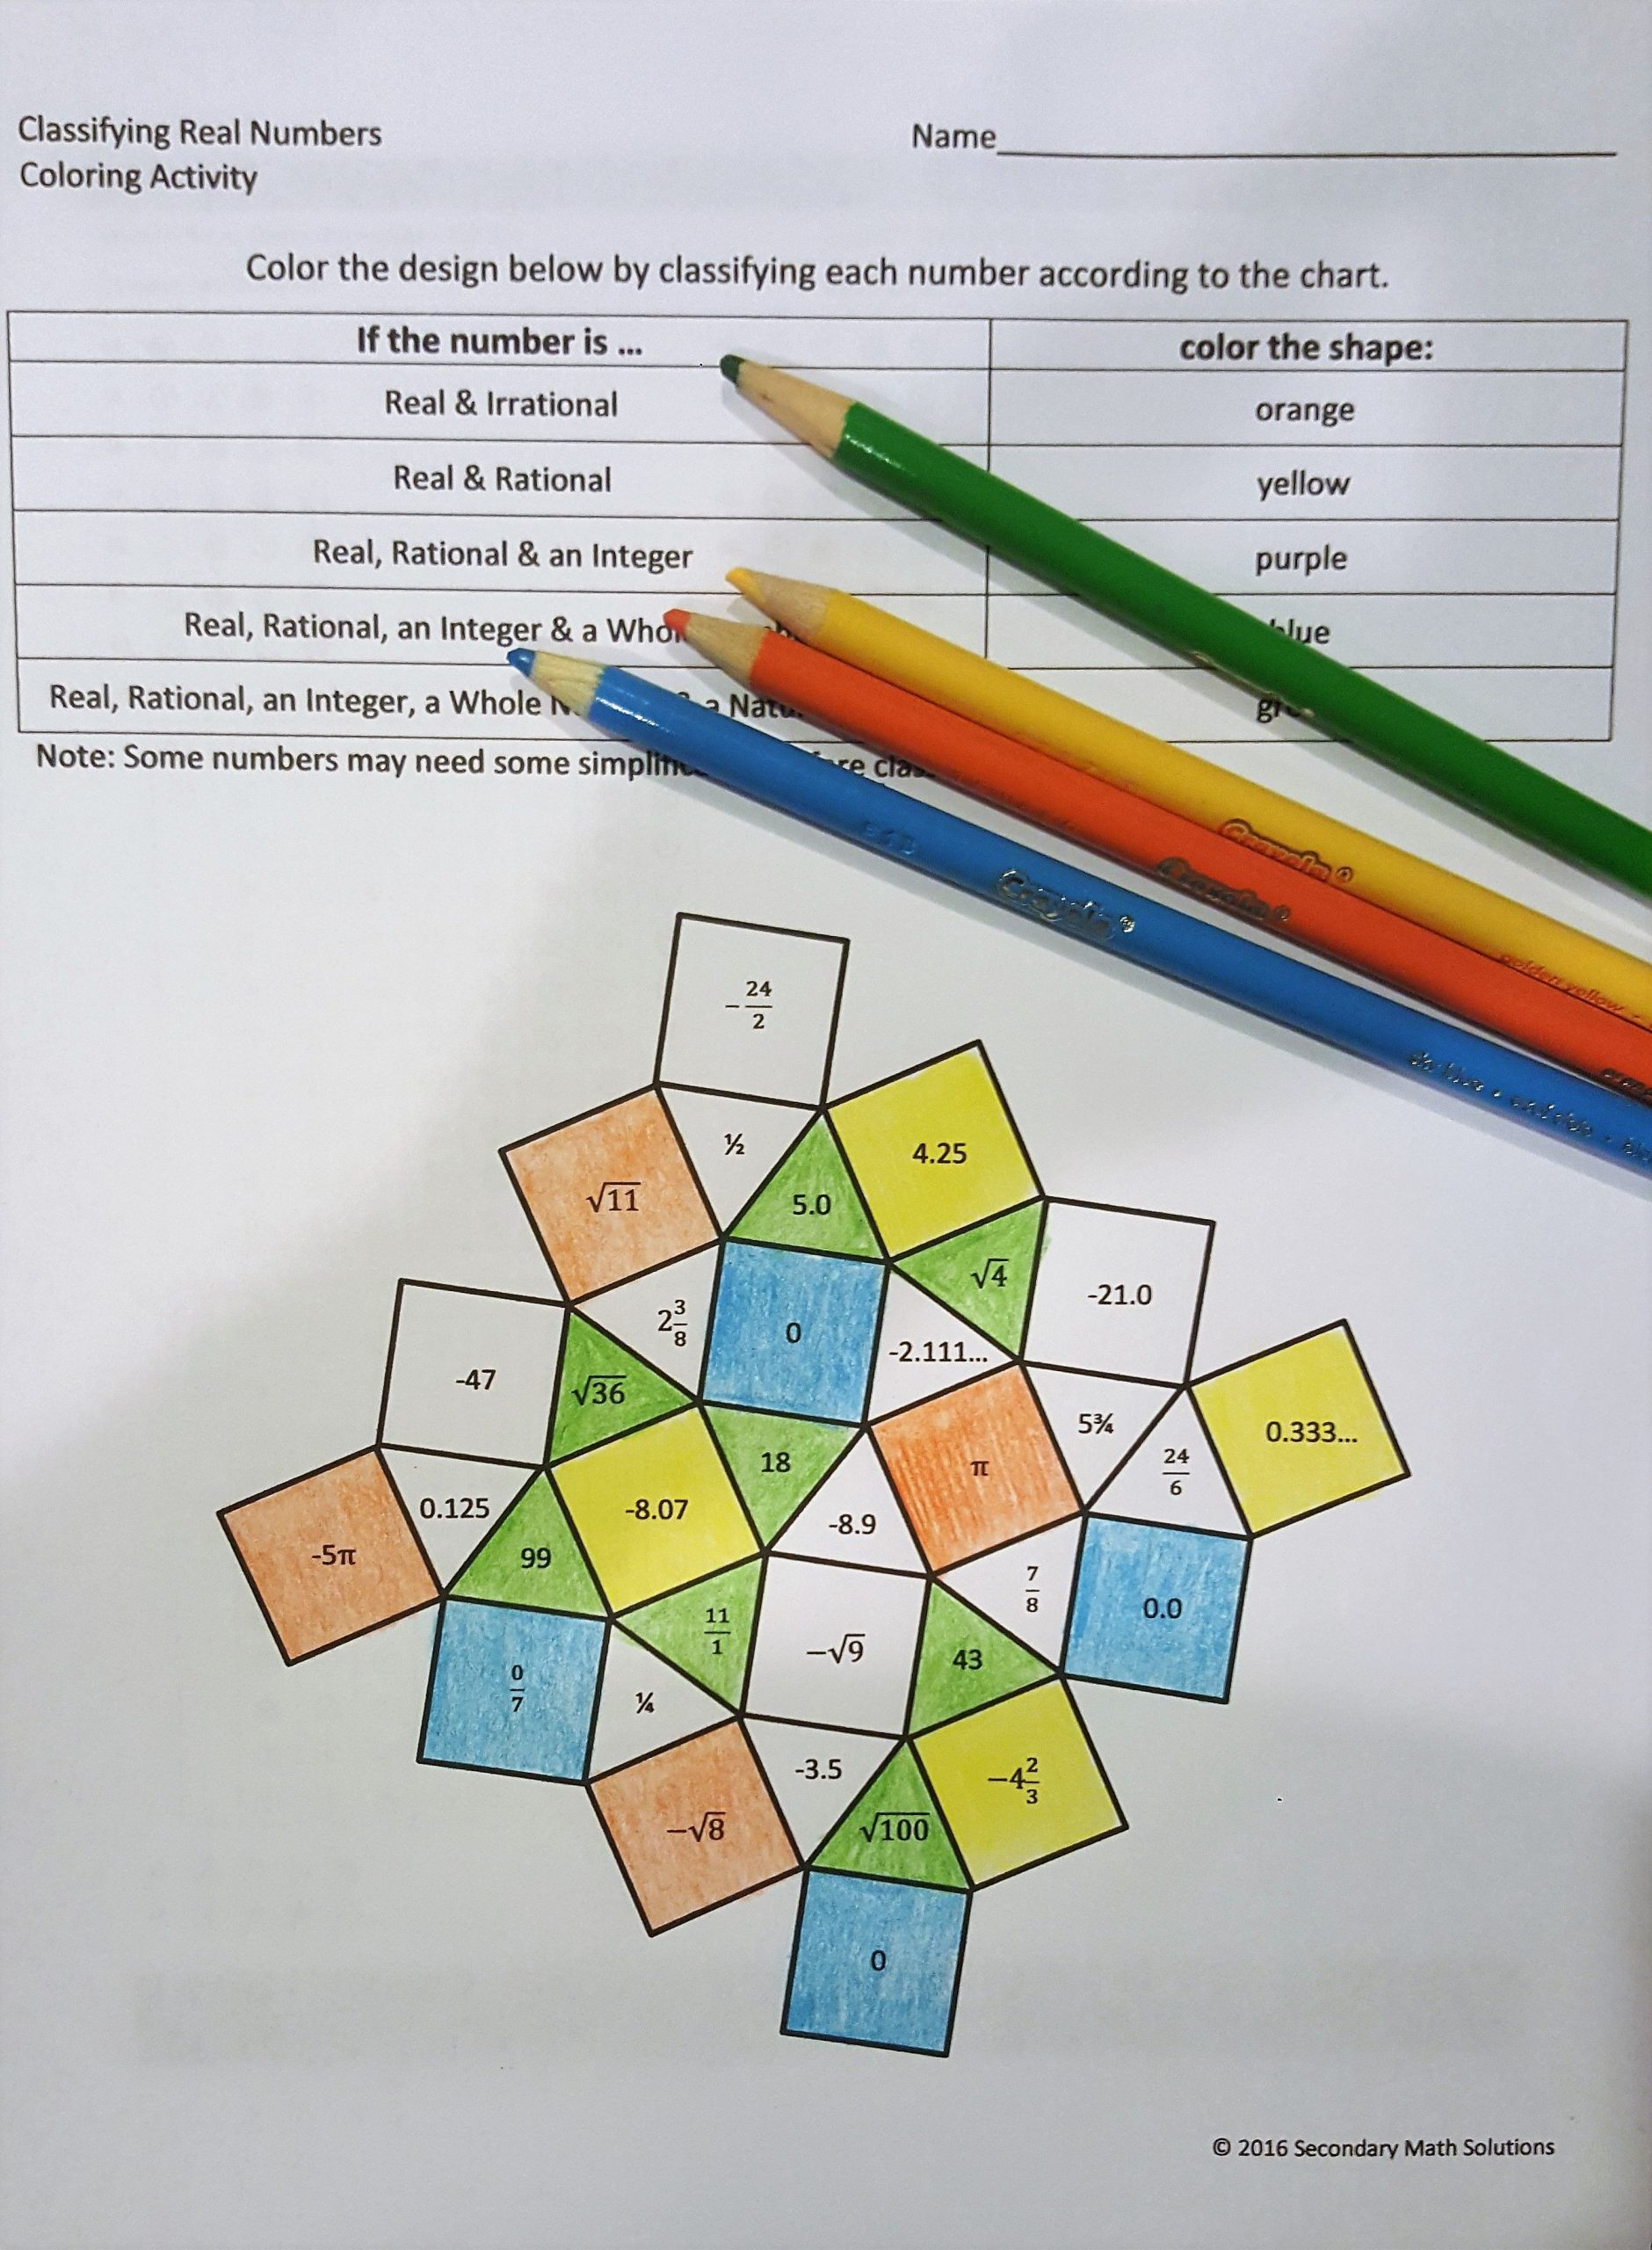 30 Classifying Numbers Worksheet Answers